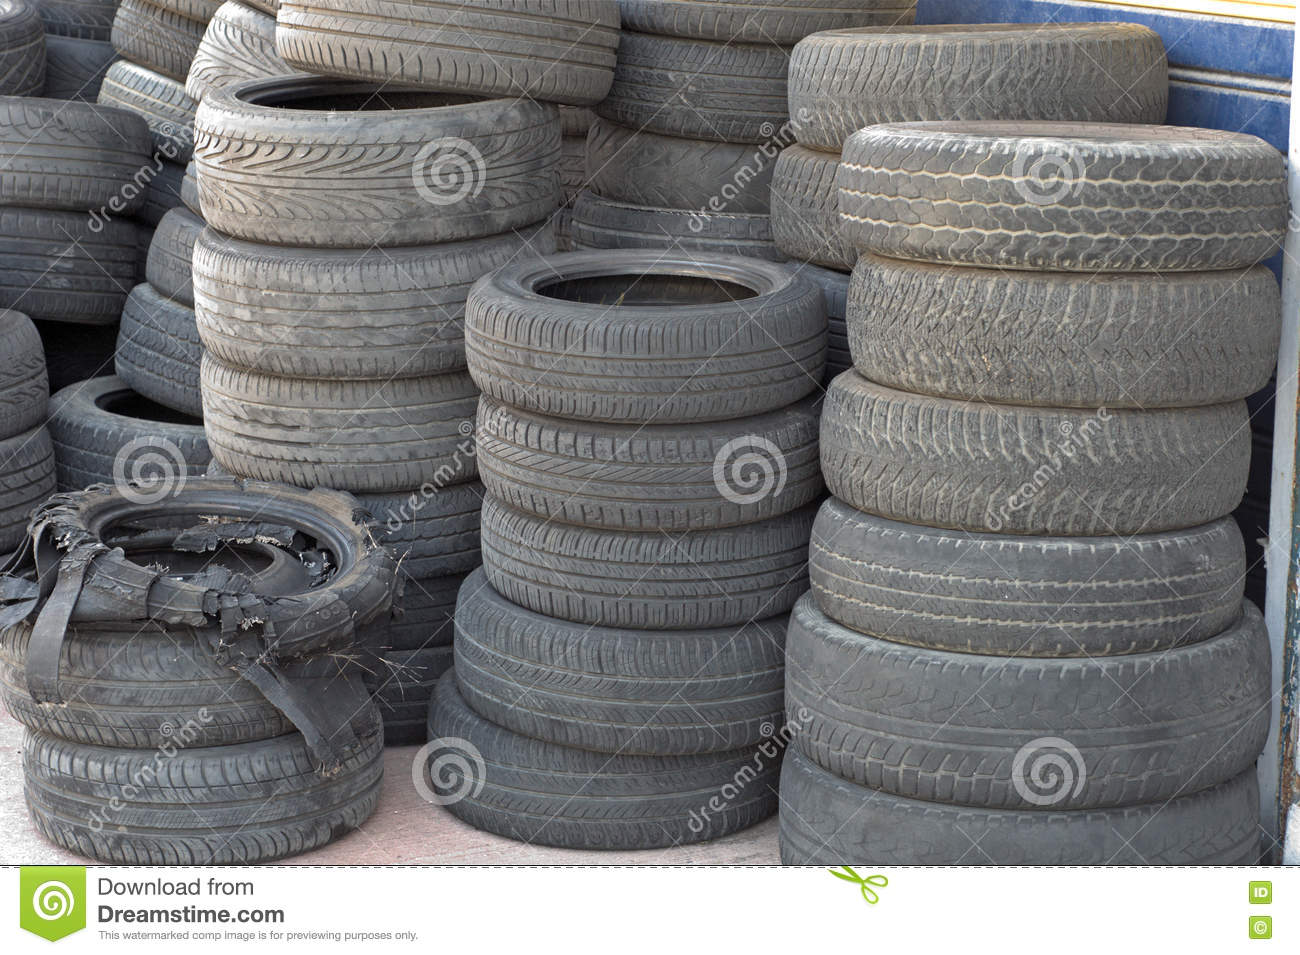 Worn out tires stock photo  Image of disposal, dirty - 81047834